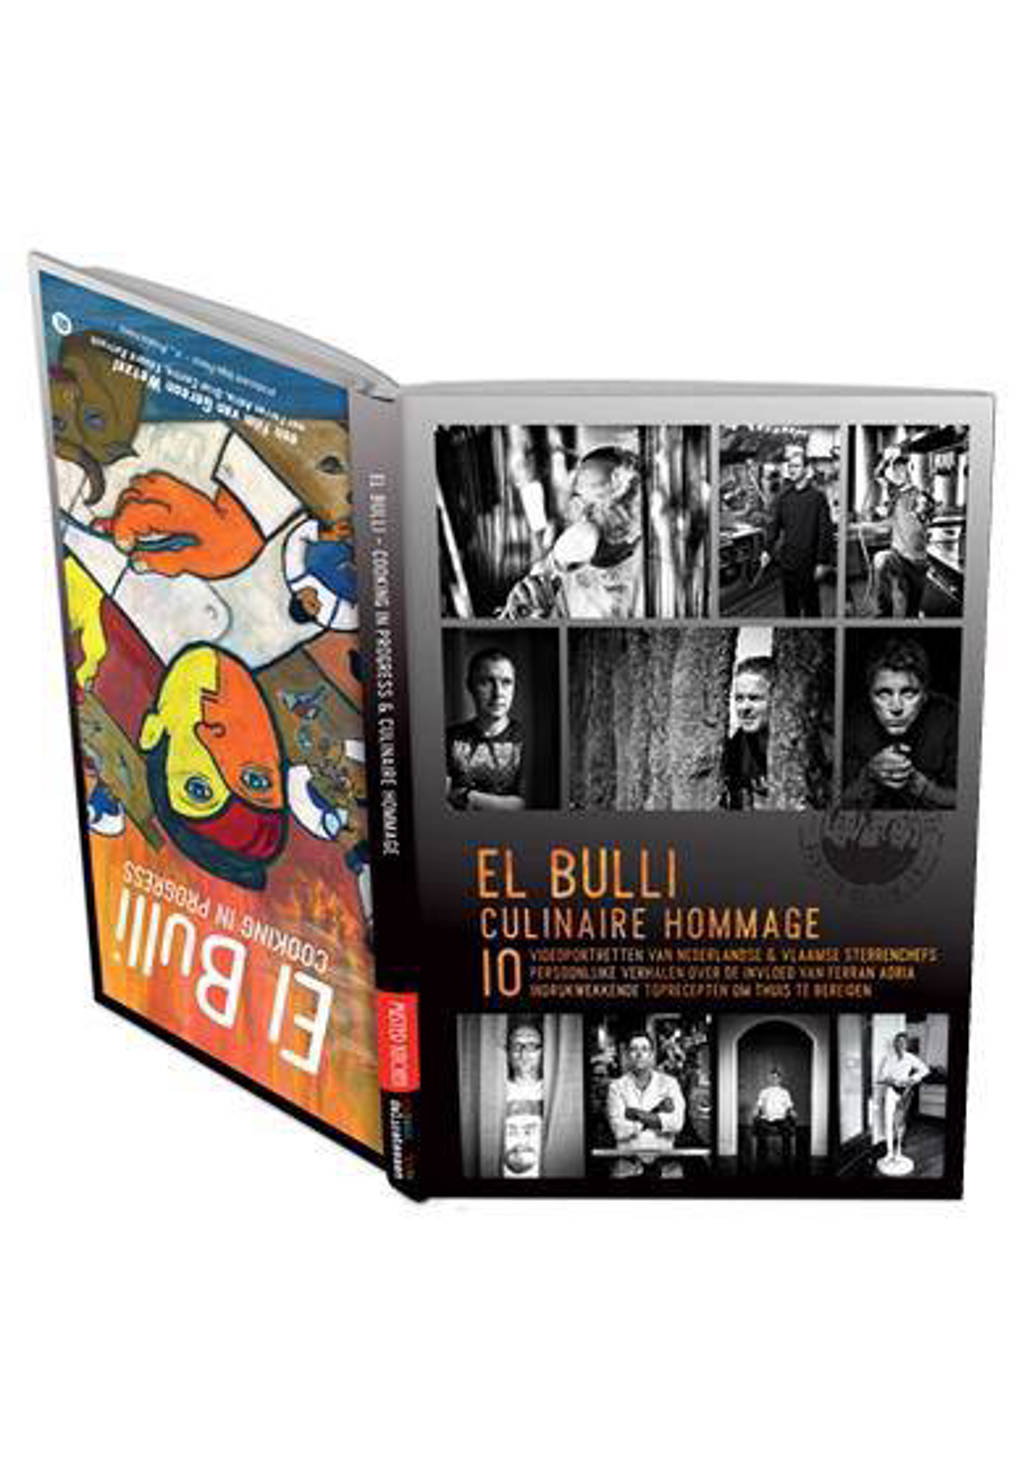 El Bulli - Cooking in progress & culinaire hommage (DVD)